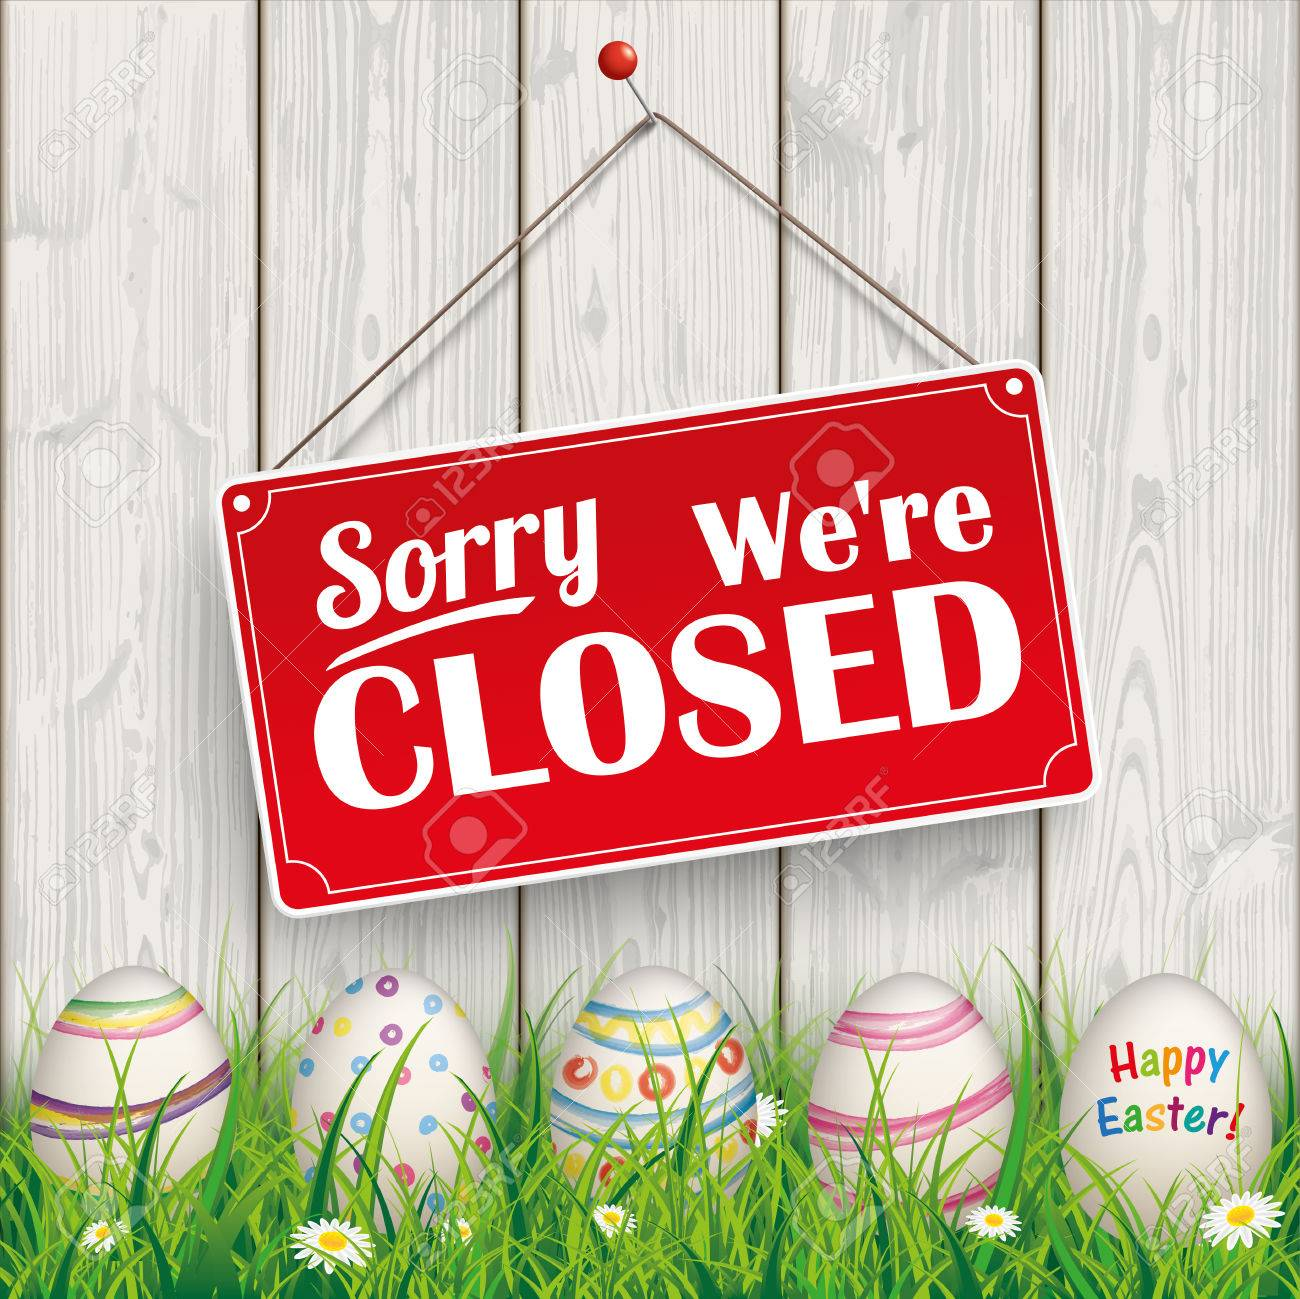 53970389-easter-eggs-with-red-hanging-sign-and-text-sorry-we-re-closed-eps-10-vector-file-